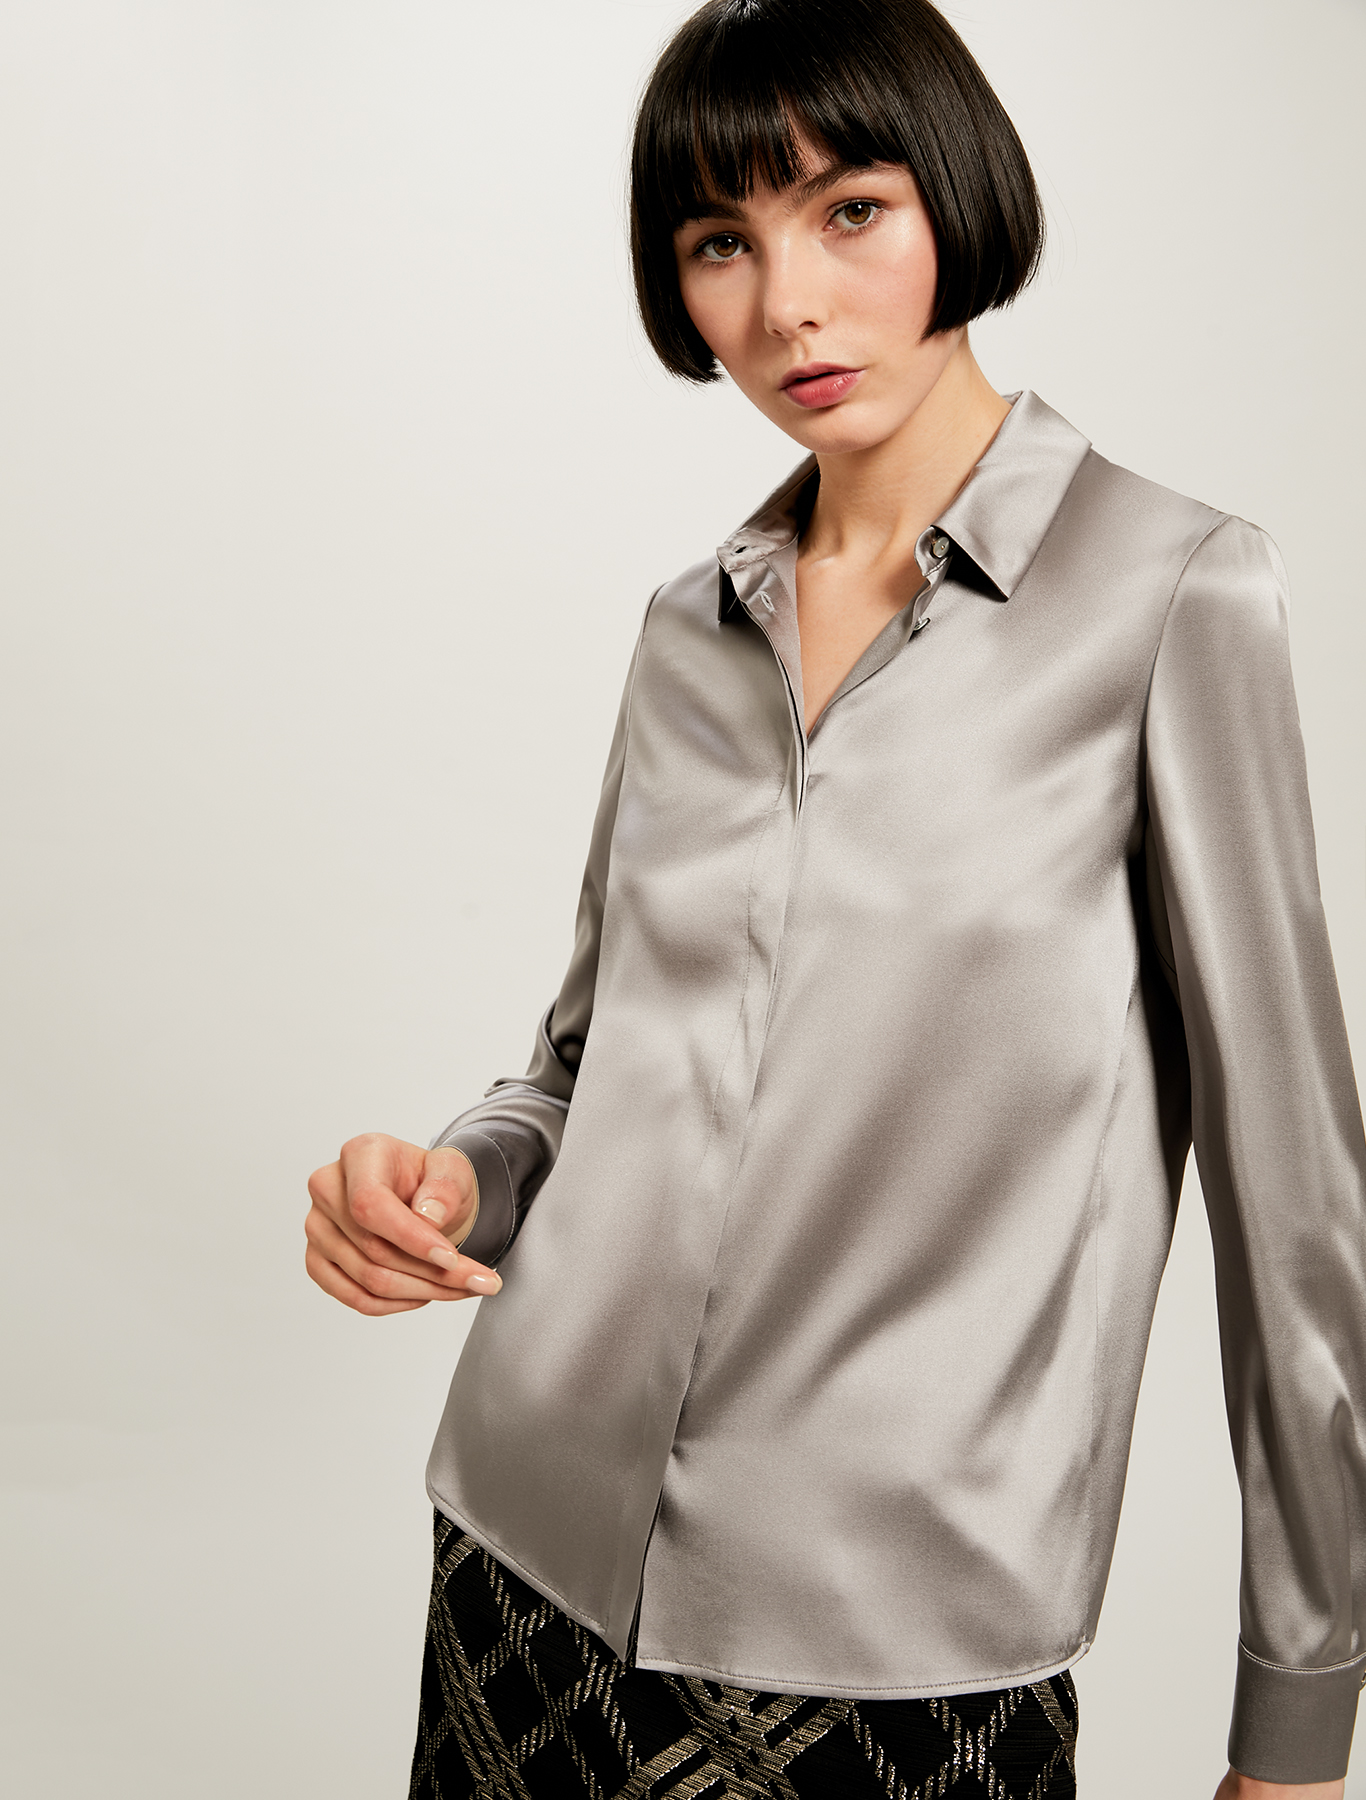 Silk satin shirt - pearl grey - pennyblack